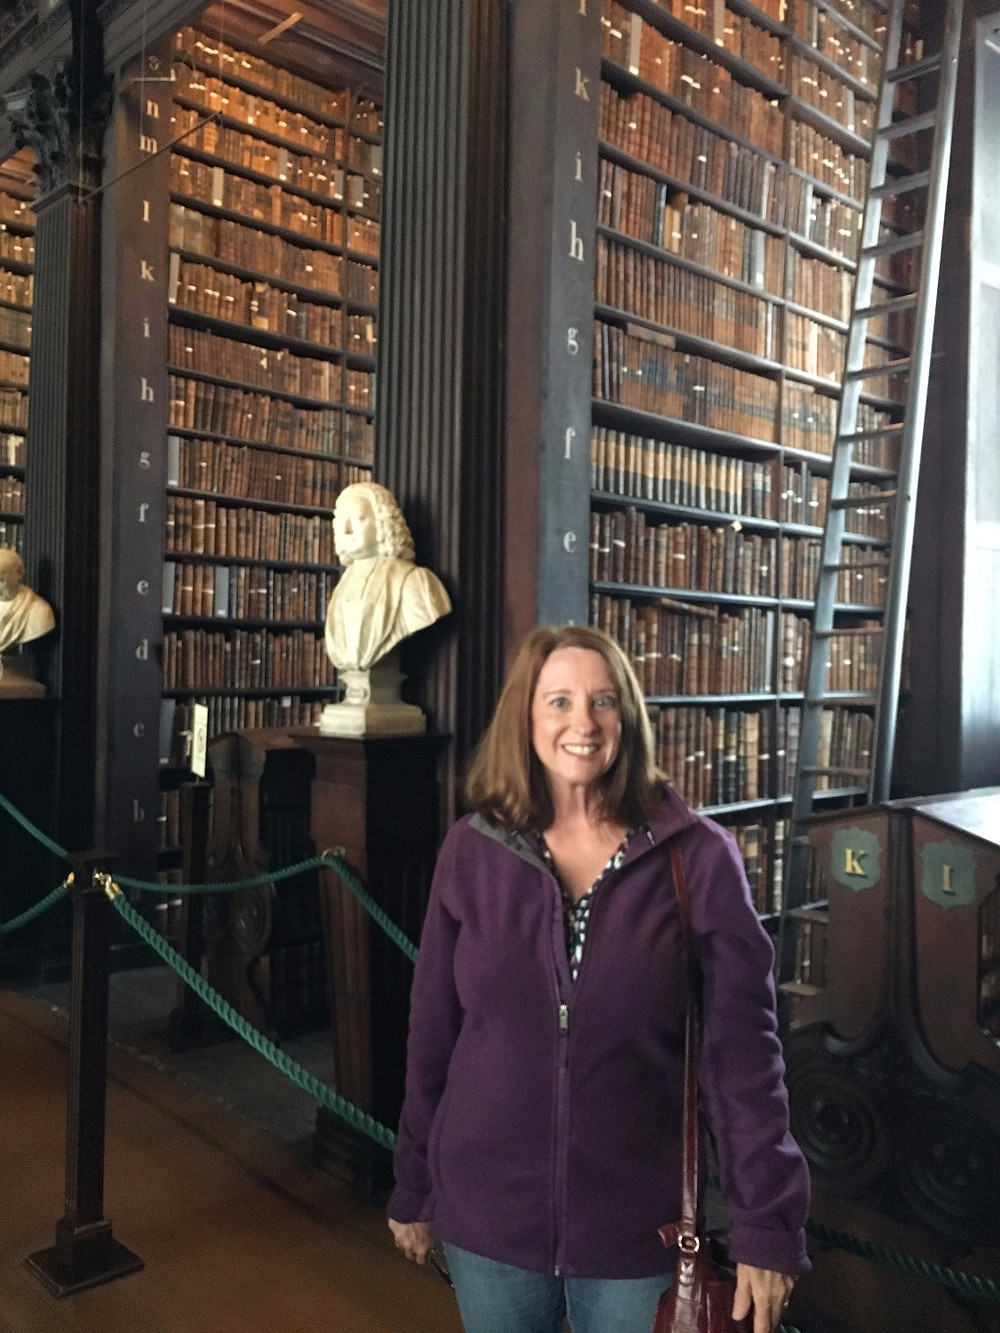 Me at the Trinity College library in Dublin, Ireland. See? Books make me happy.